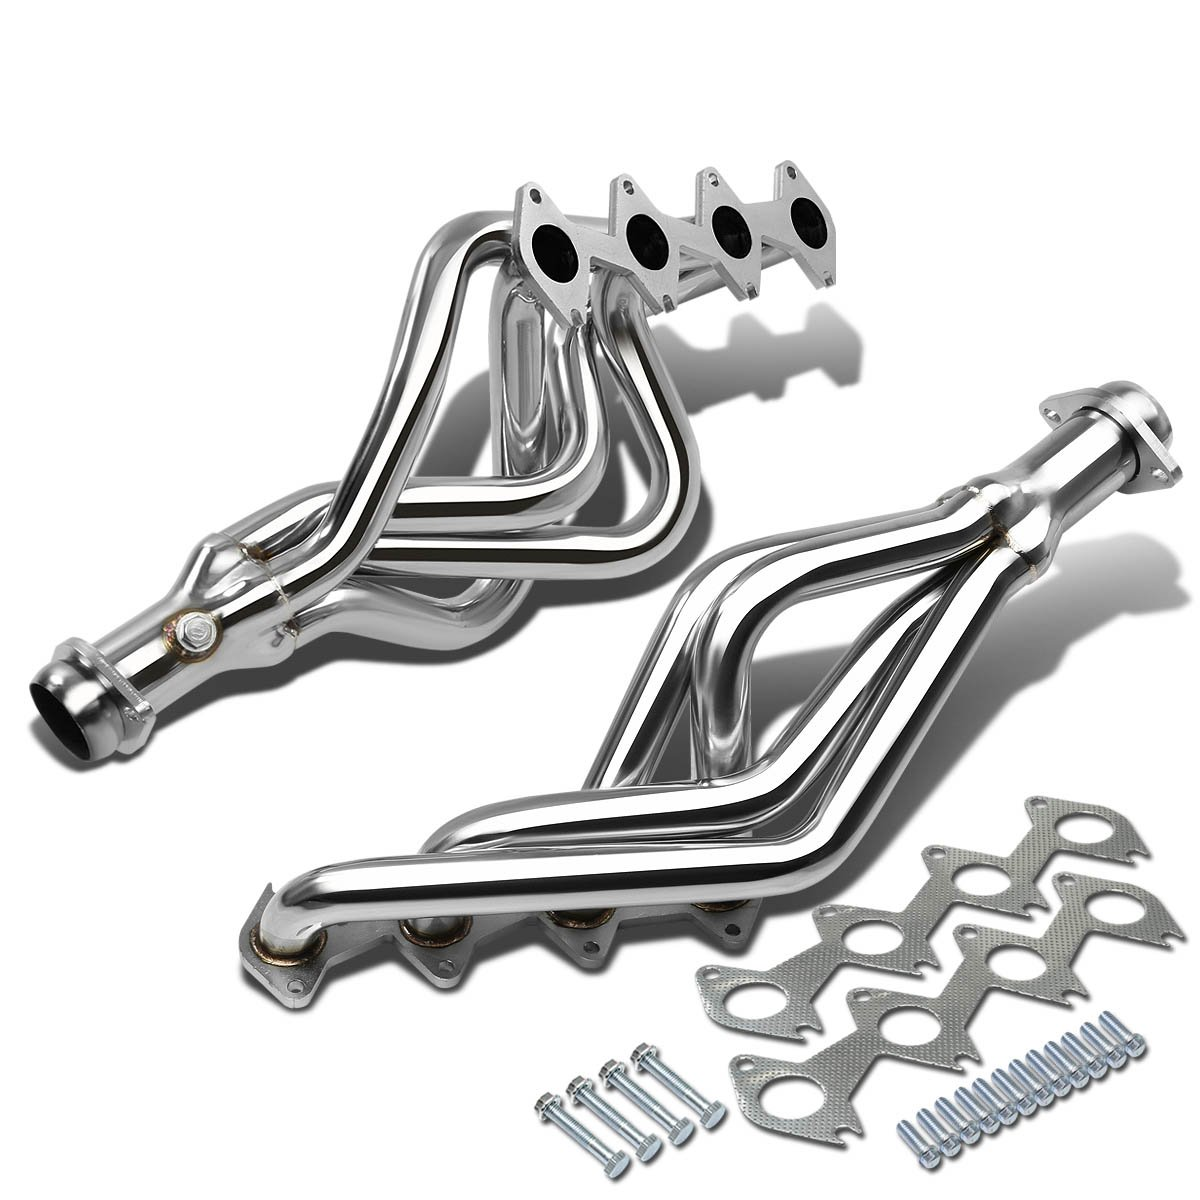 For Ford Mustang GT High-Performance 2x4-1 Stainless Steel Exhaust Header Kit 4.6L V8